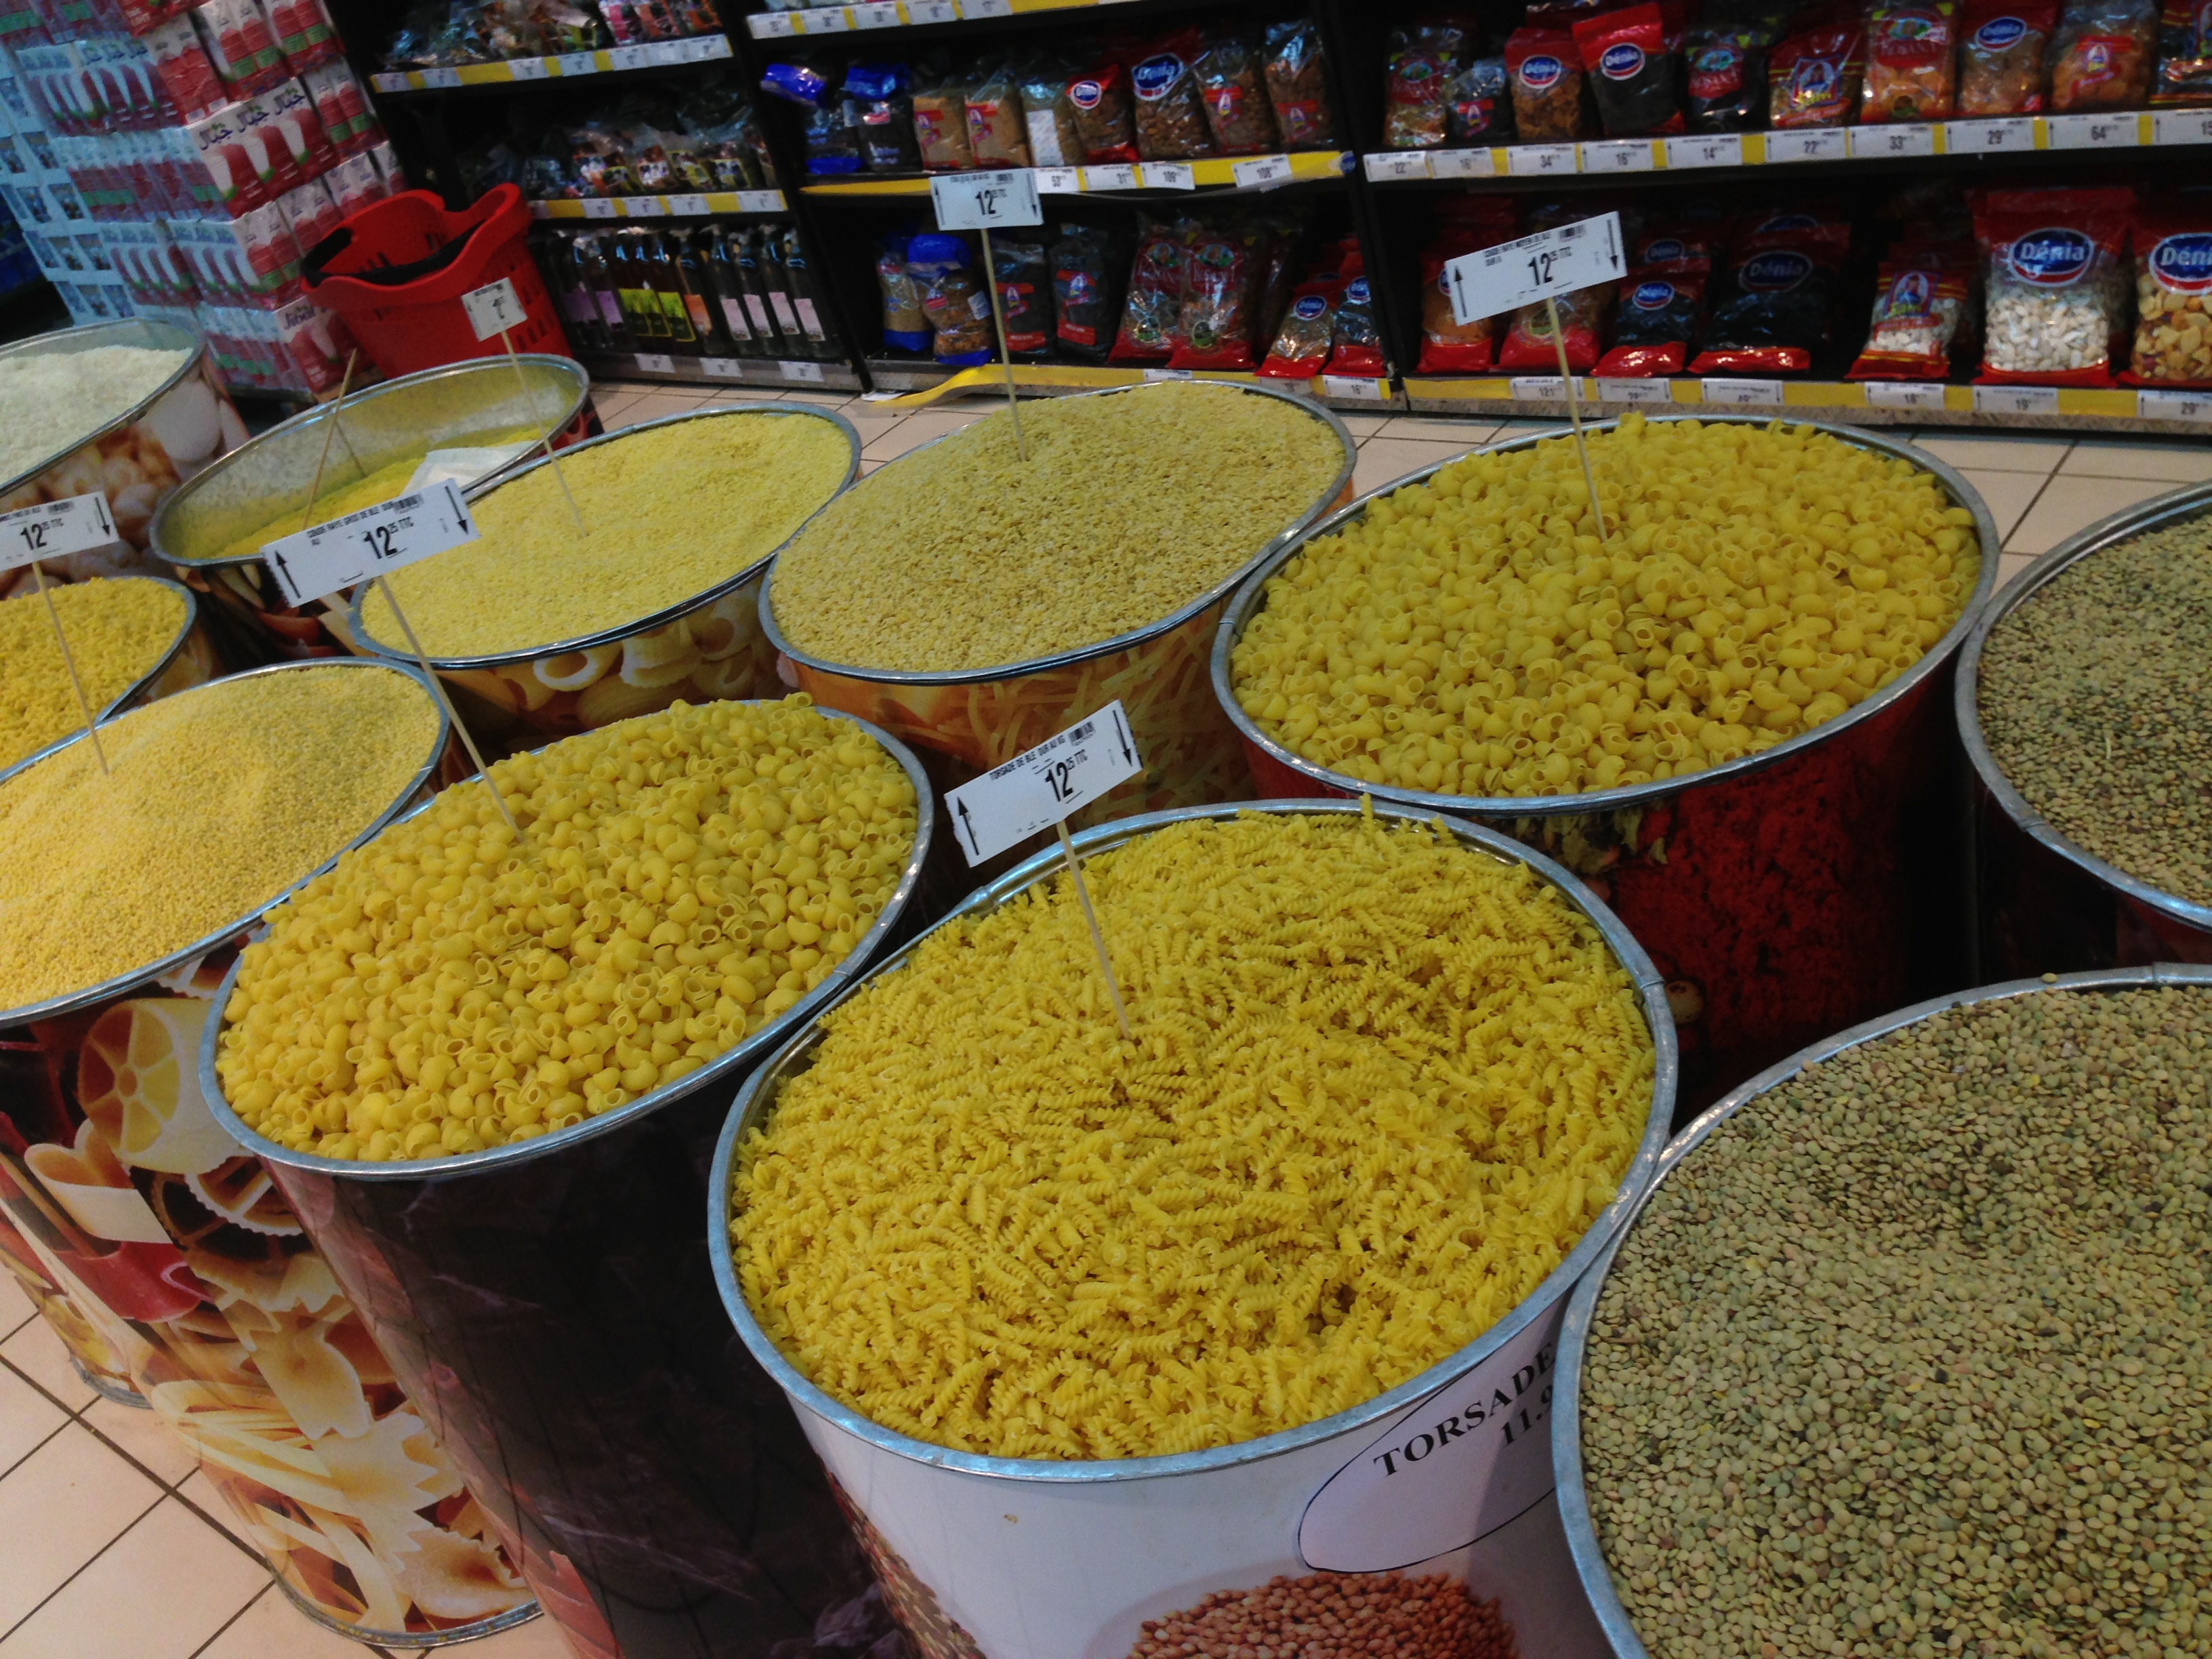 Beans and Pasta in Moroccan market